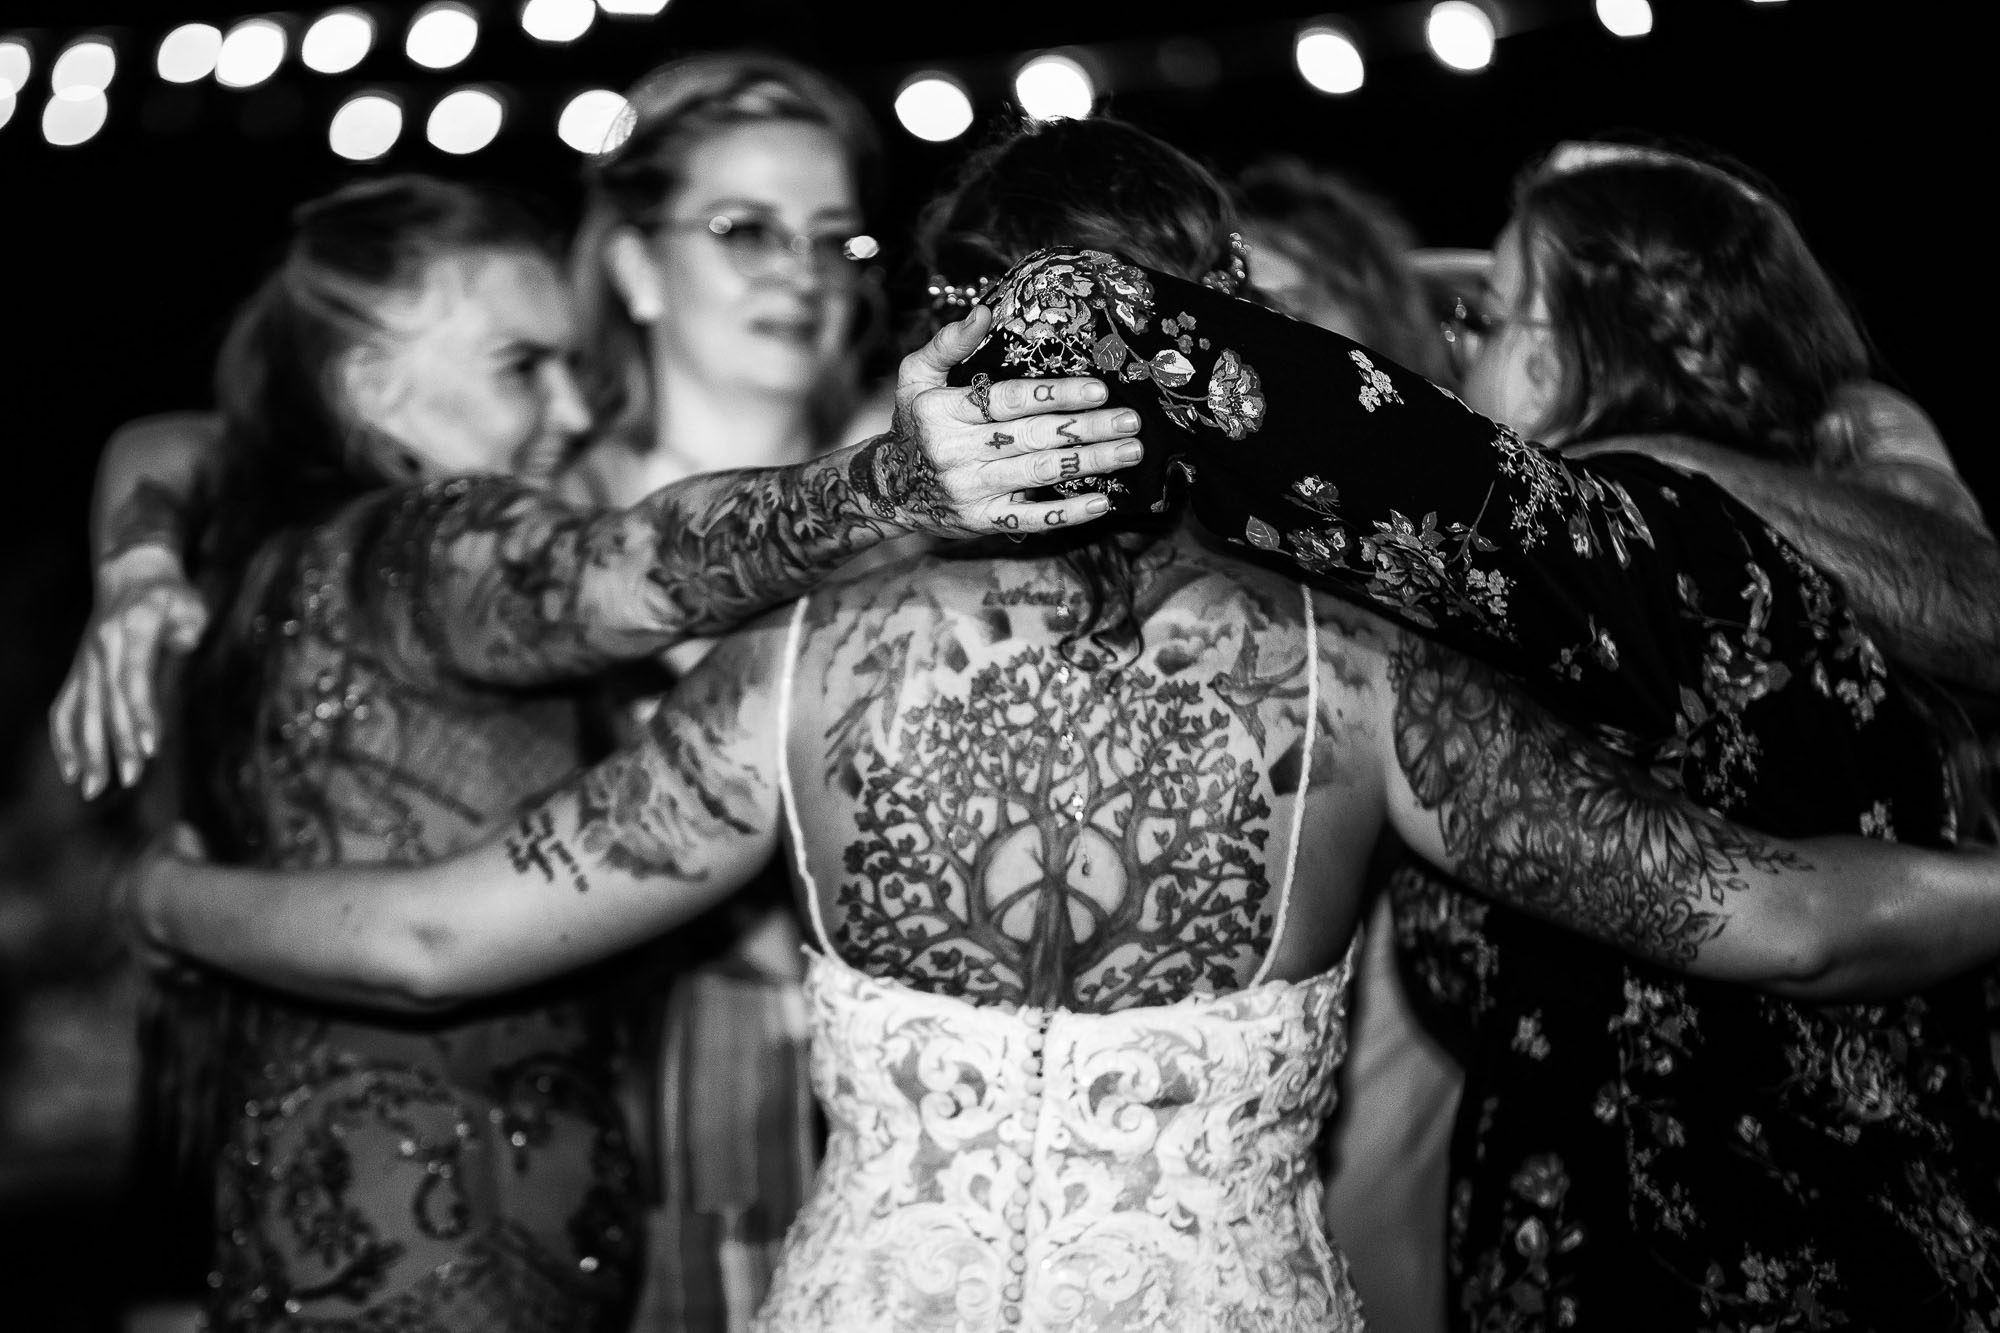 Dancing with the tattooed bride